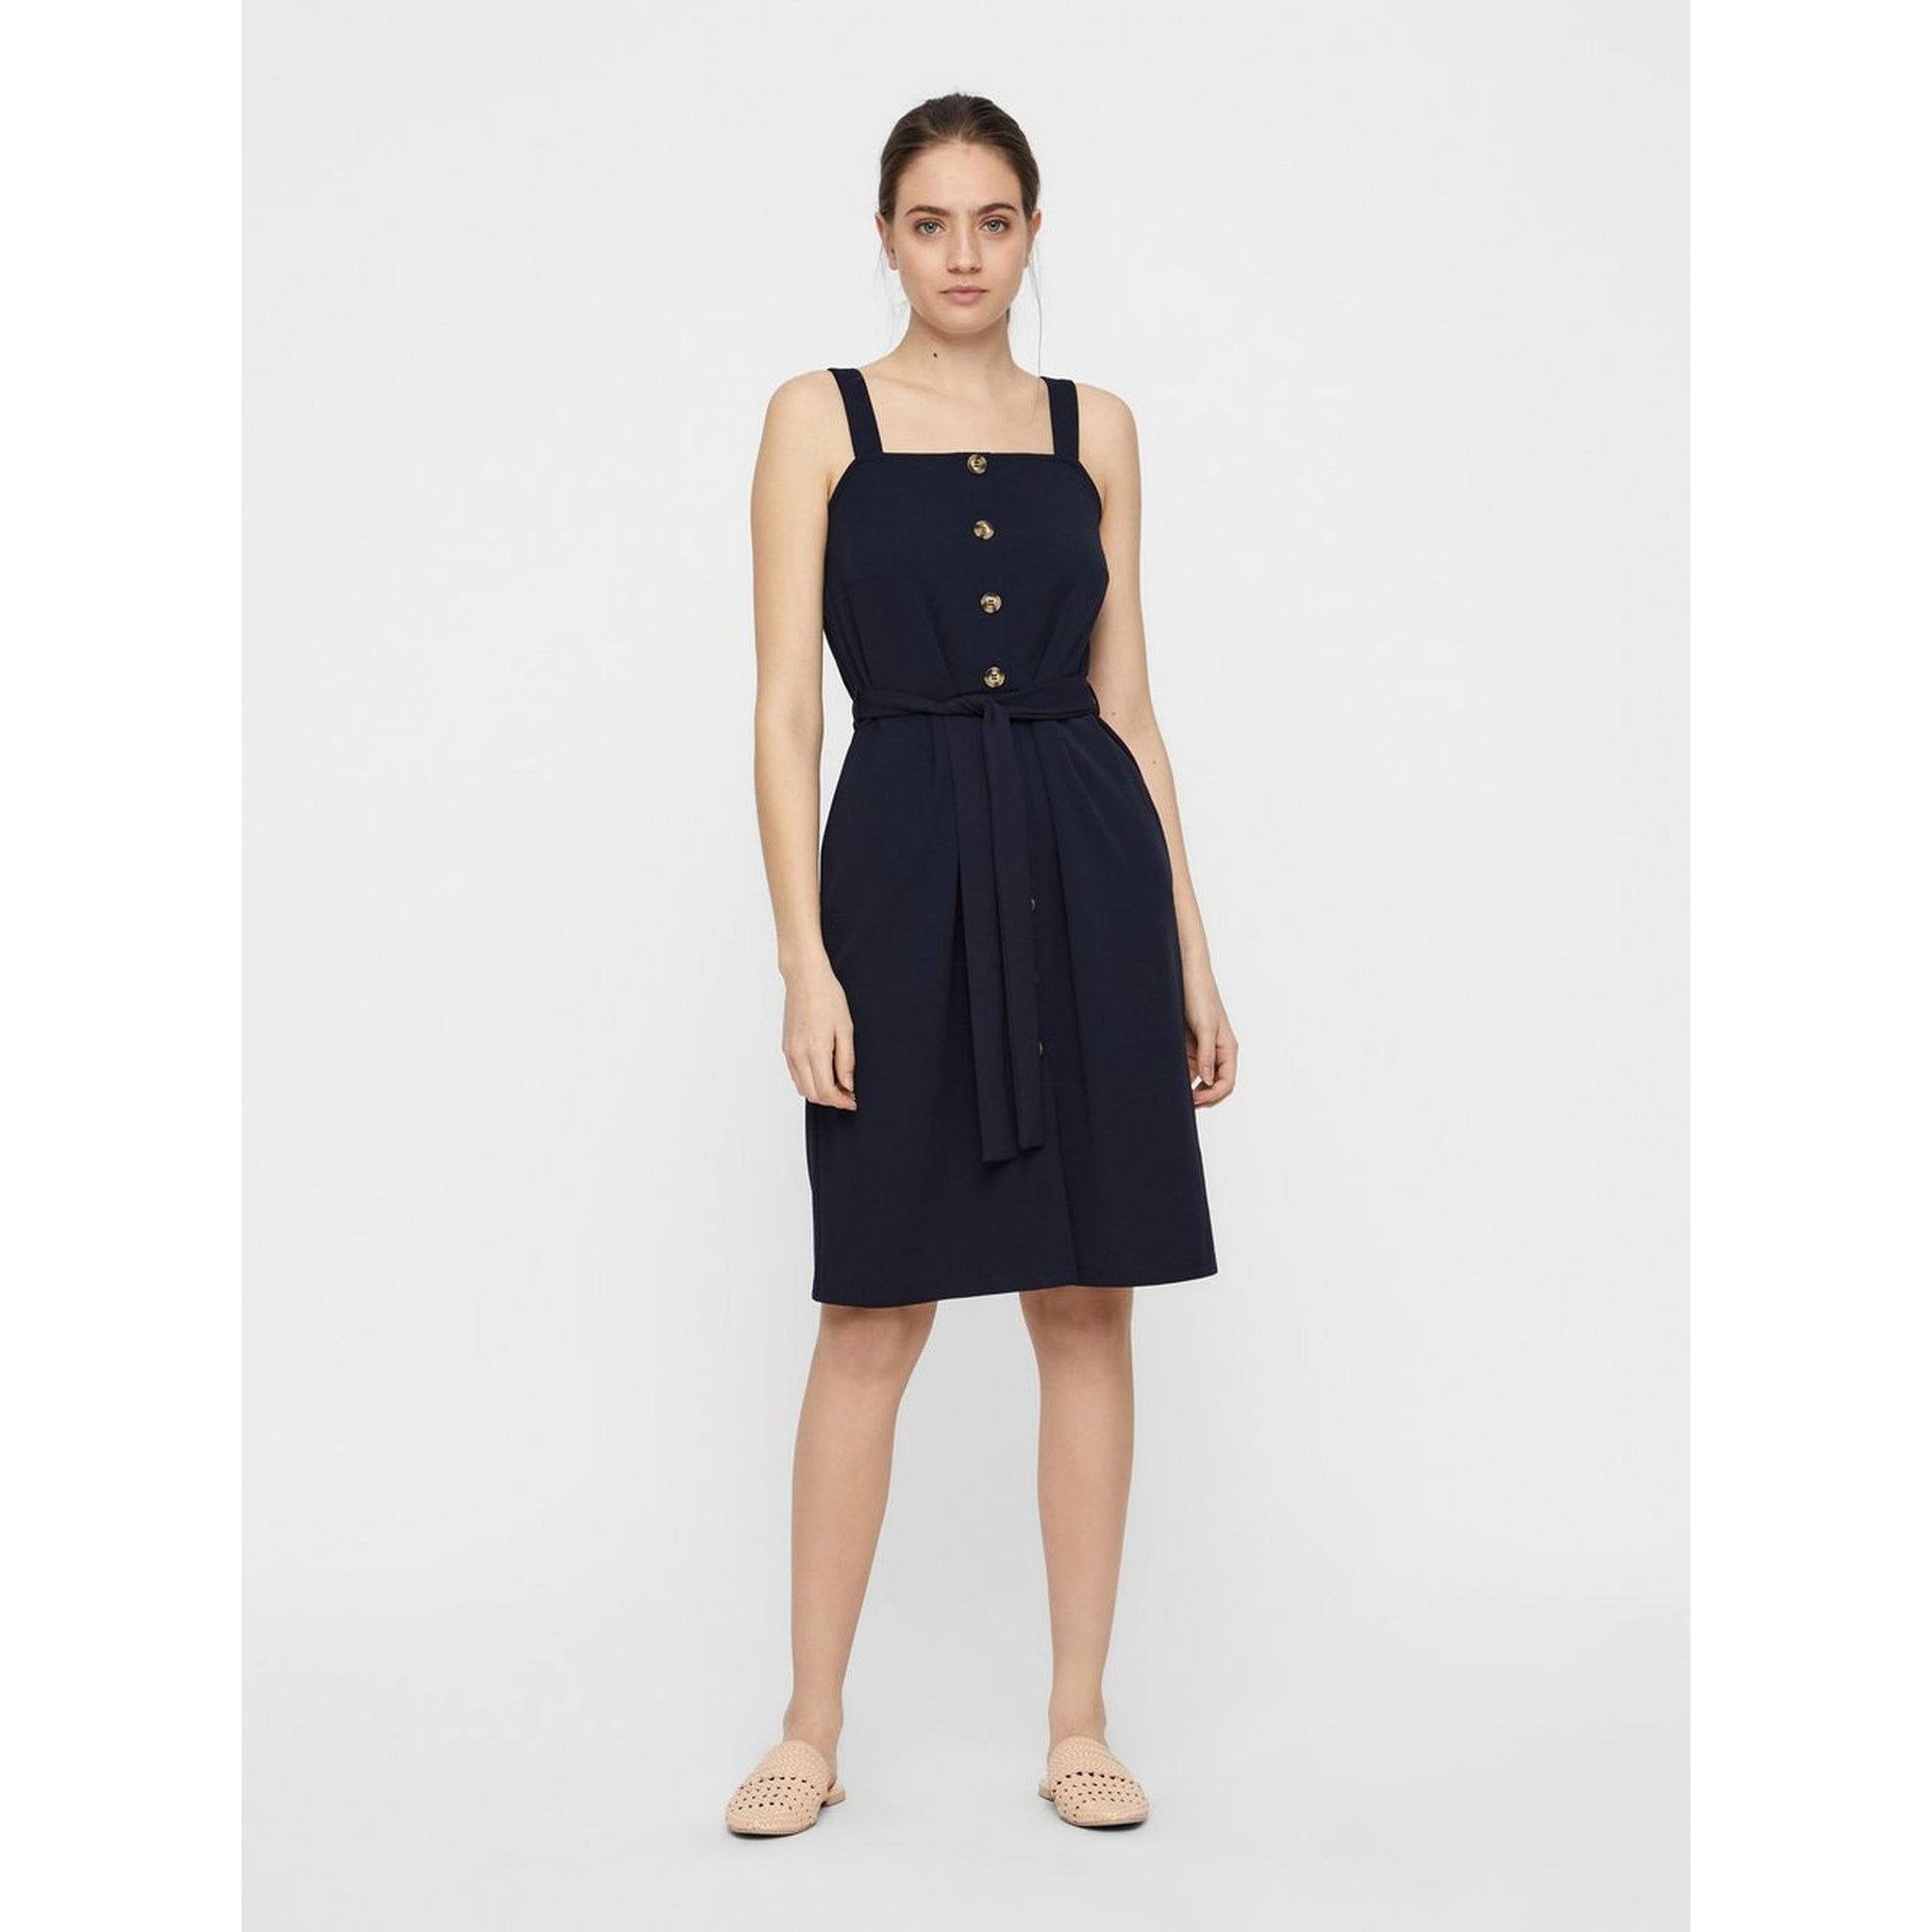 VERO MODA : Millie Short Sleeve Button Front Dress Navy